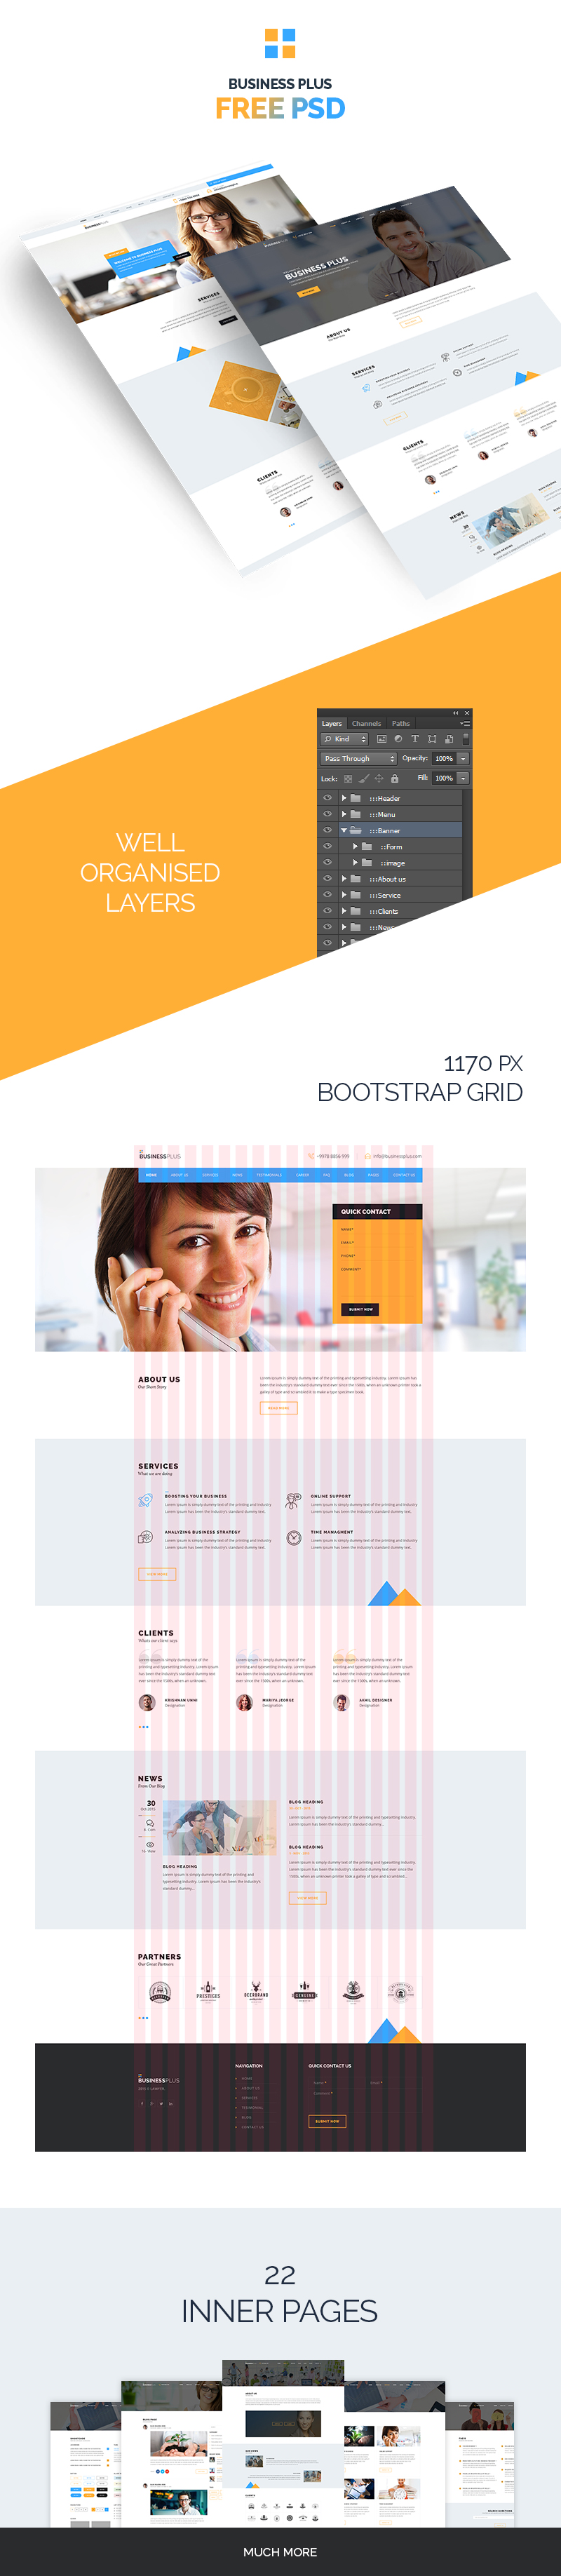 businessplus-psd-template-preview